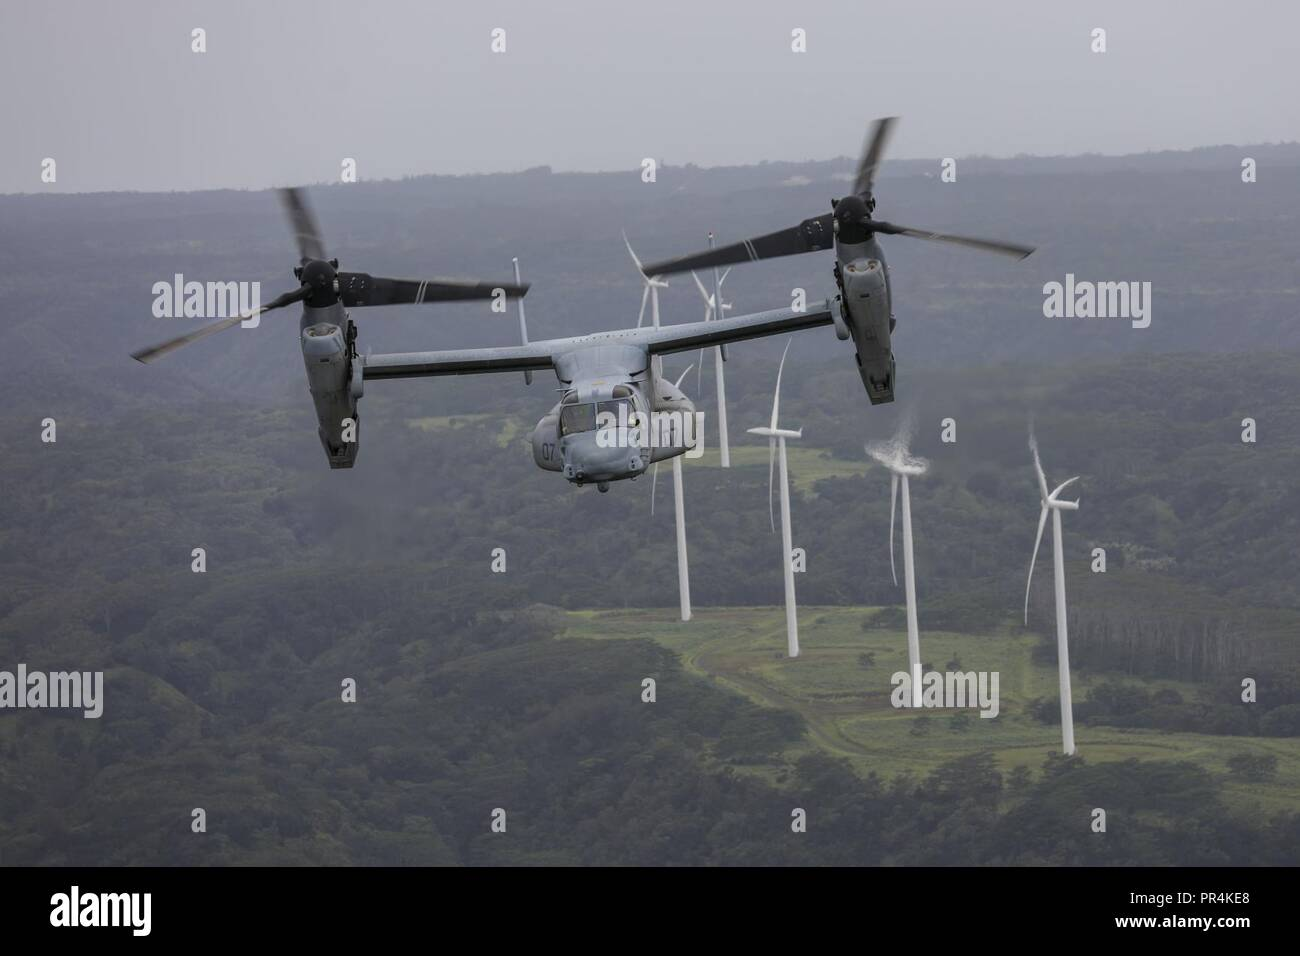 An MV-22 Osprey aircraft assigned to Marine Medium Tiltrotor Squadron 363 (VMM-363), flies over jungle terrain during a confined area landing exercise near the Kahuku Training Area, Sept. 13, 2018. The training provided an opportunity for pilots and crew chiefs to improve their proficiency and experience in flying around a tropical environment. Stock Photo